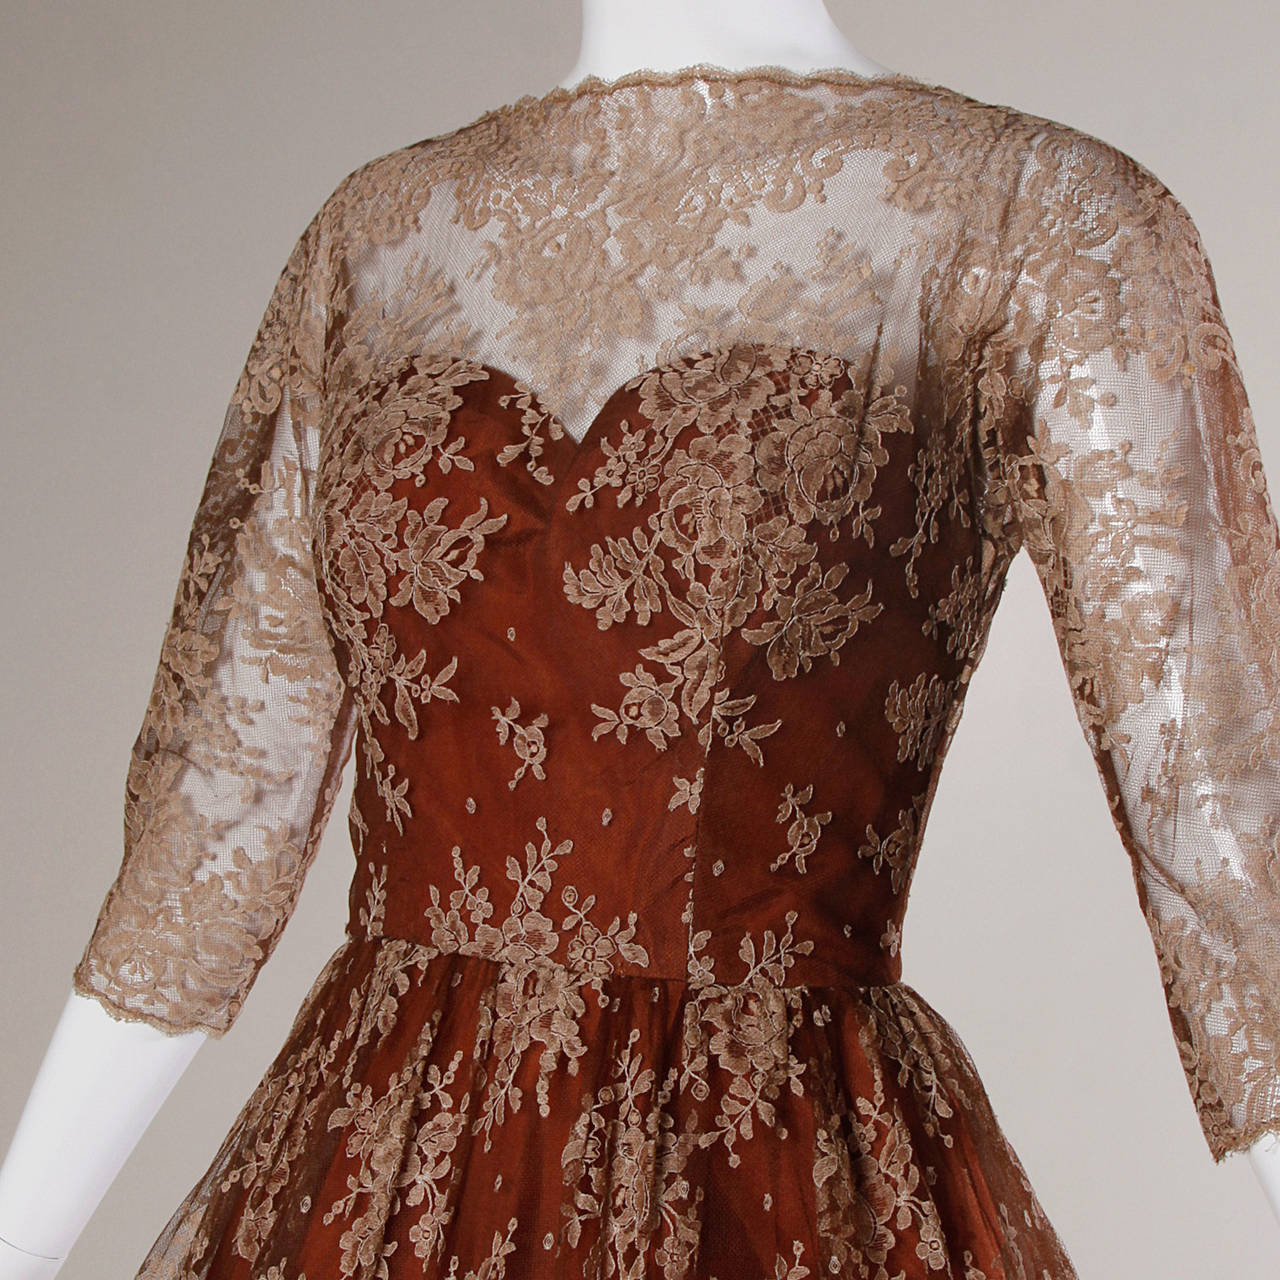 Dreamy 1950s Brown Tulle Chantilly Lace Cocktail Dress 2